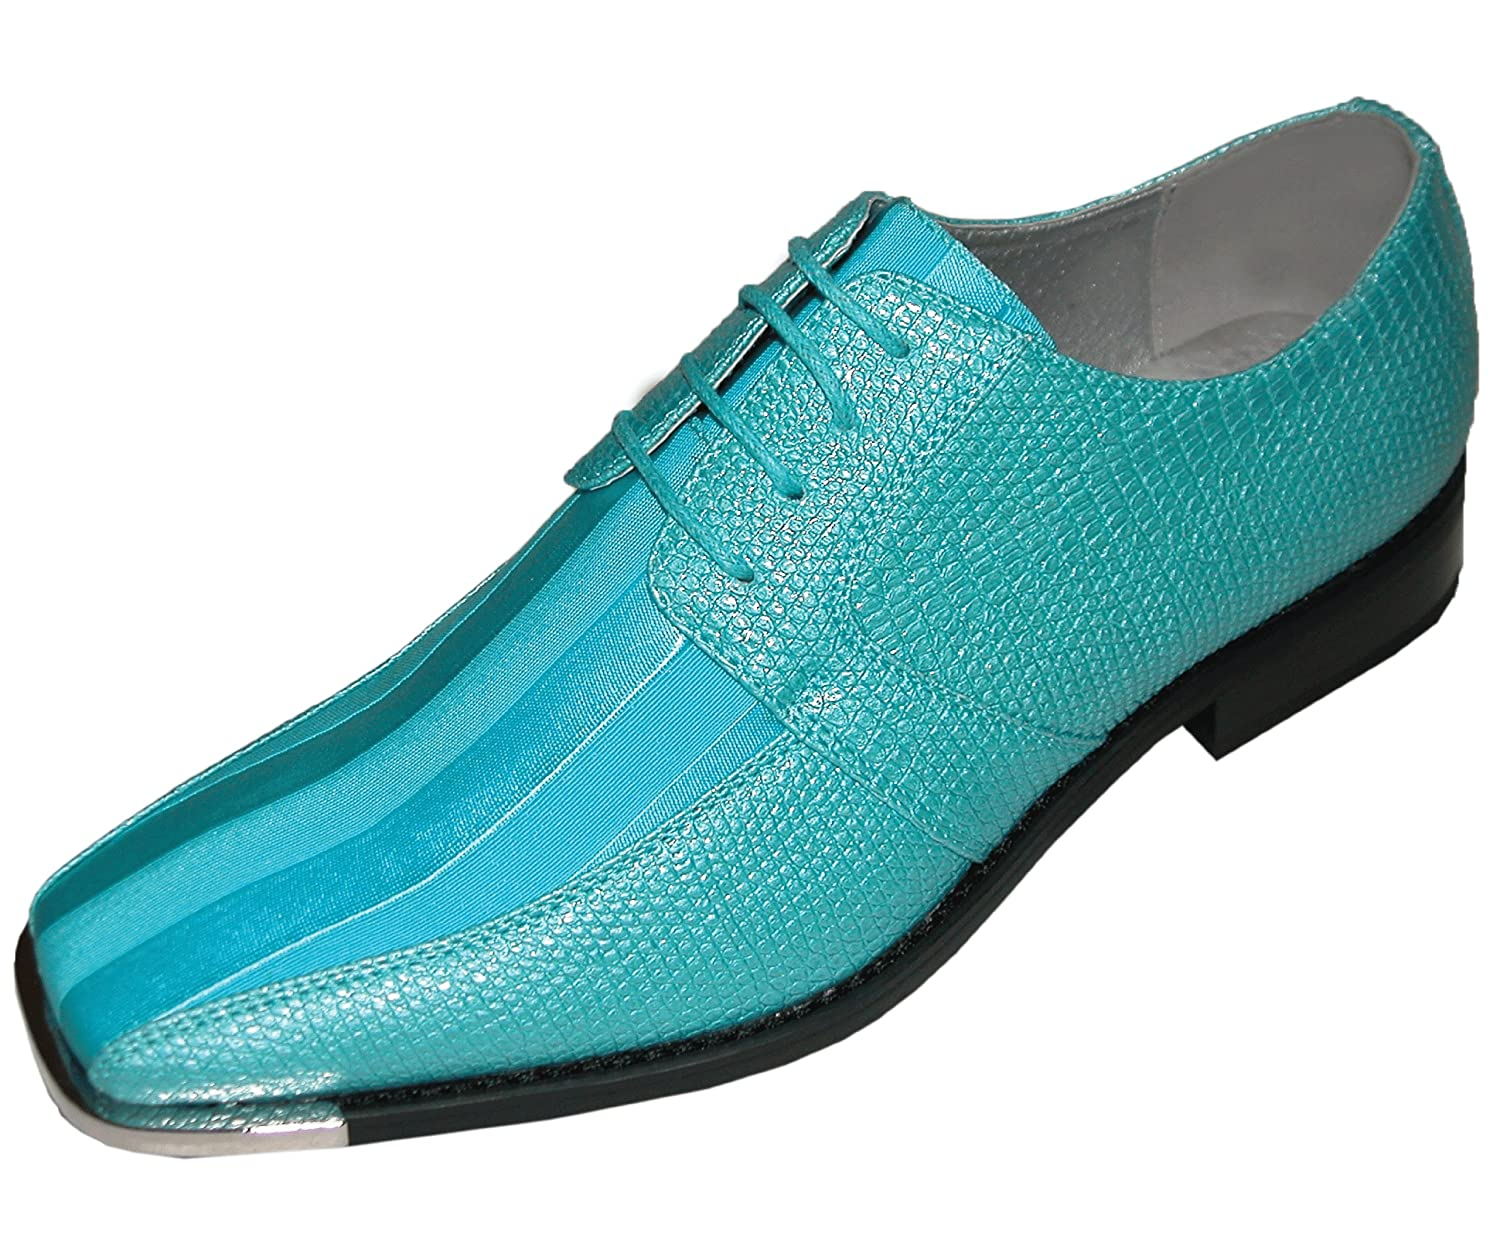 viotti-mens-turquoise-dress-oxford-striped-satin-dress-shoe-style-163st-trq-025